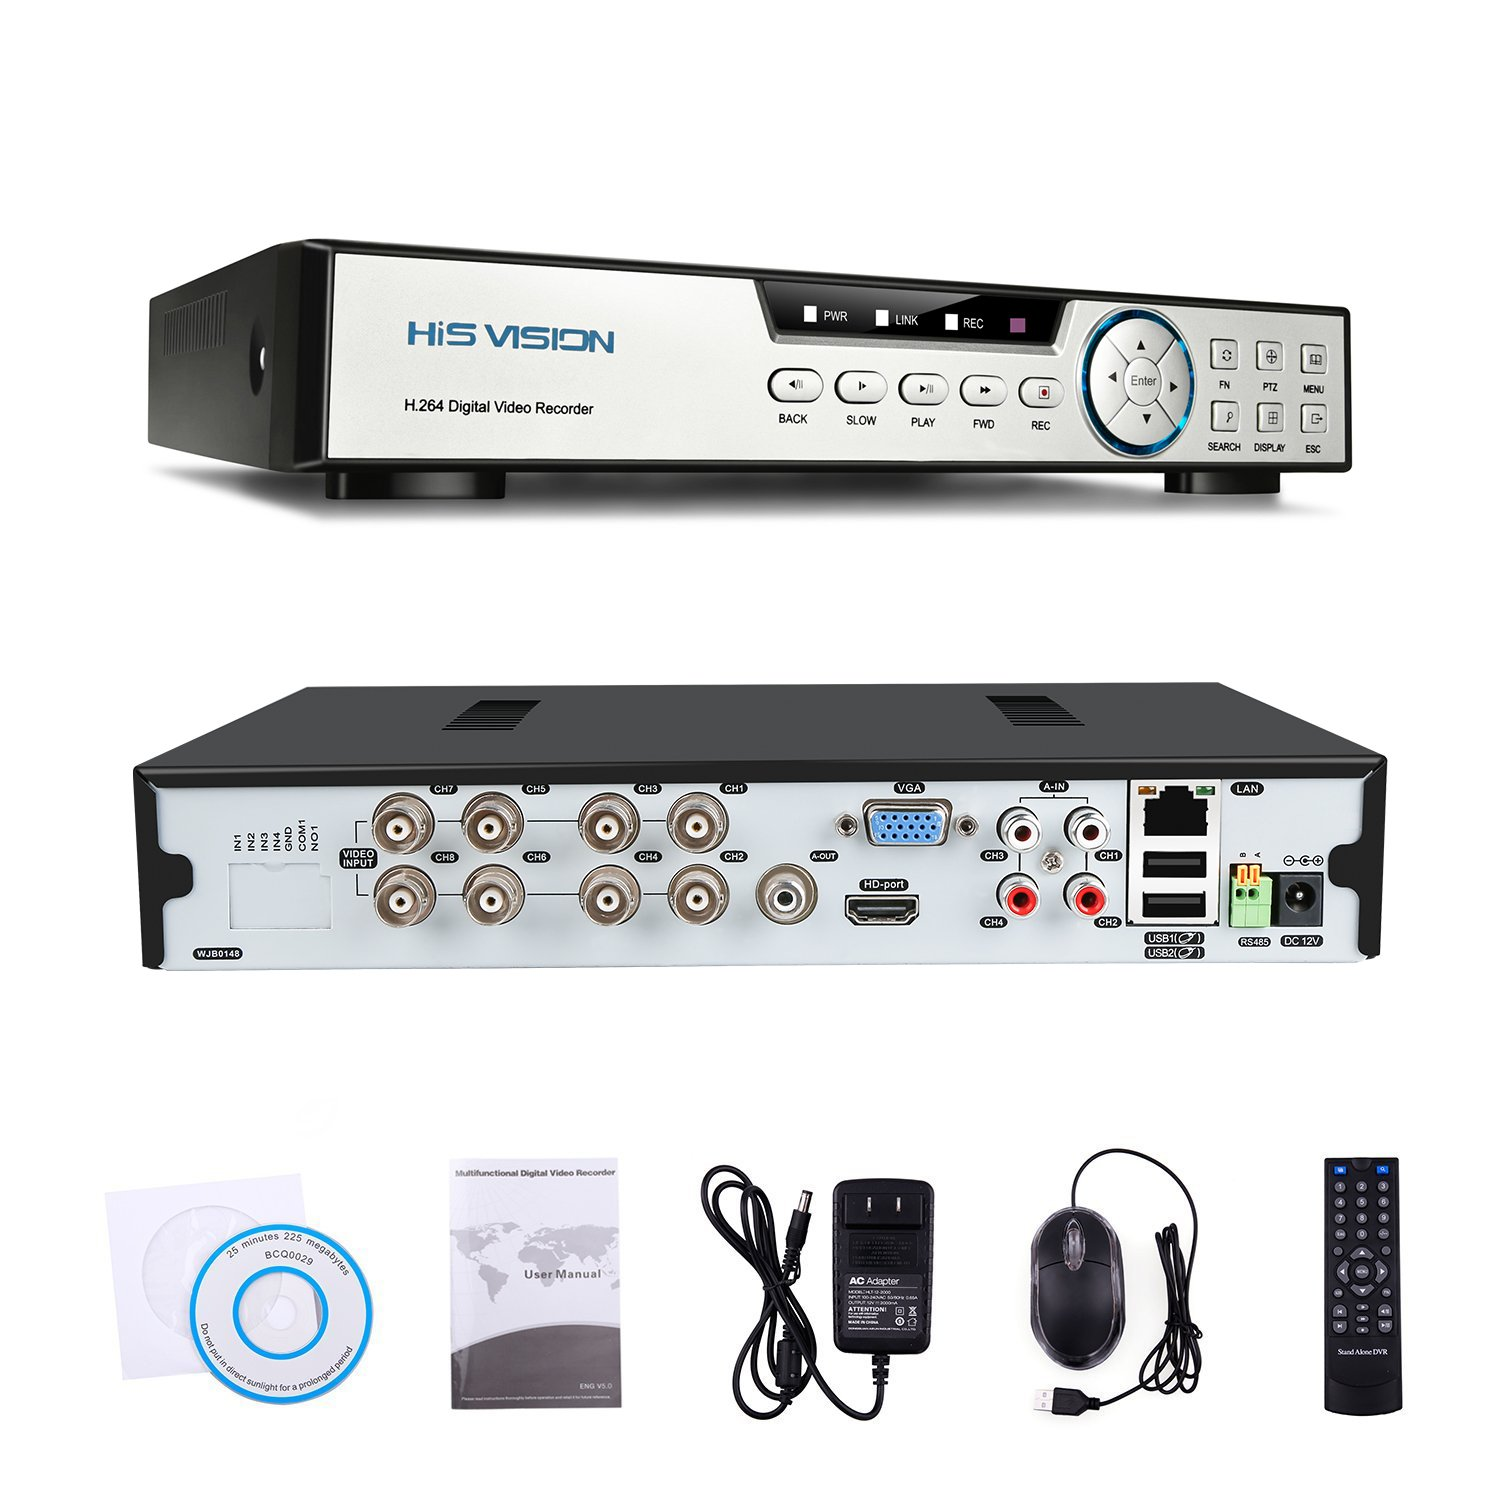 HISVISION 8CH 1080N AHD DVR 5-in-1 Hybrid (1080P NVR+1080NAHD+960HAnalog+TVI+CVI)CCTV 8-channel HDMI QR Code Scan Easy Remote View Email Alerts Home Security Surveillance Camera System(No HDD)